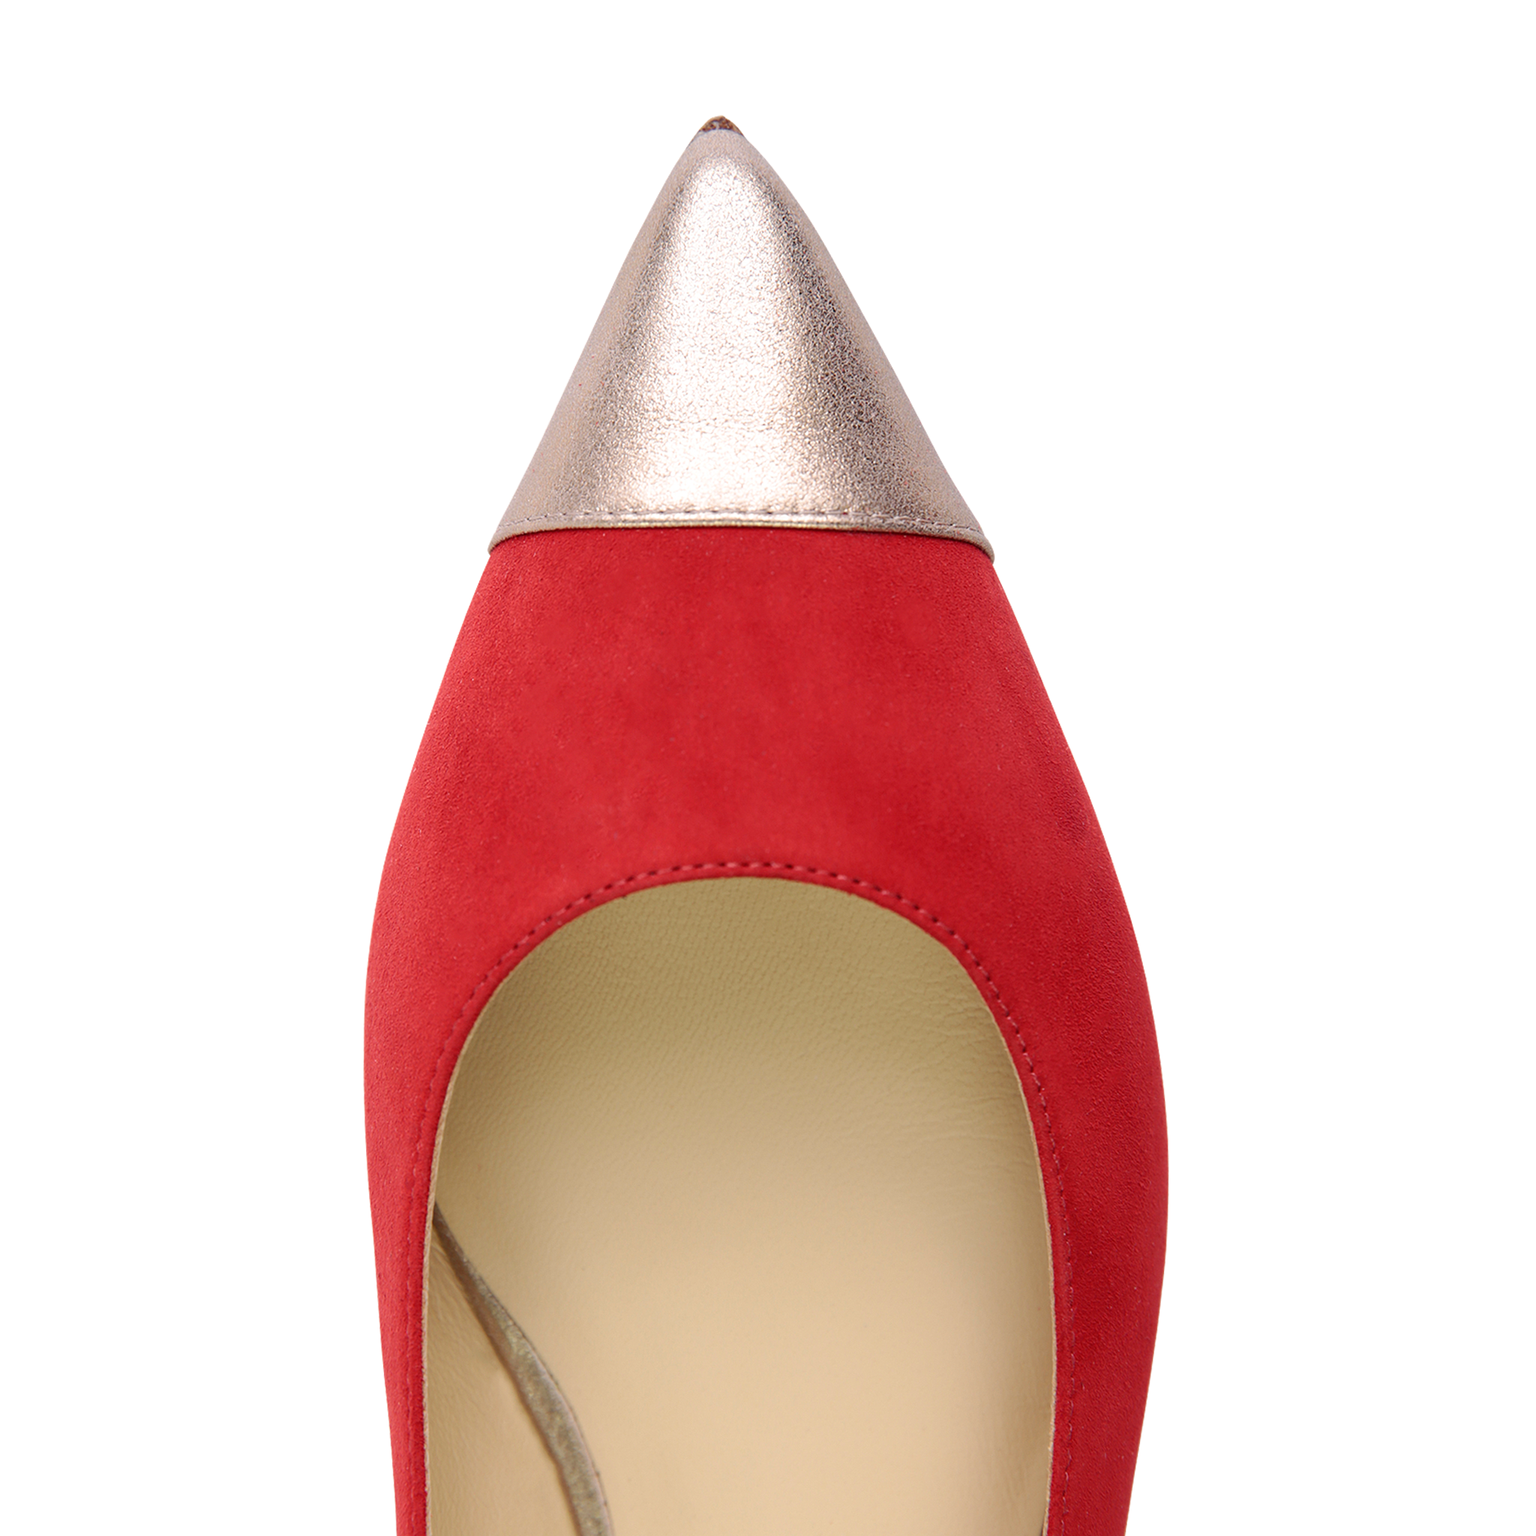 COMO - Velukid Rosso + Burma Sabbia Rosata, VIAJIYU - Women's Hand Made Sustainable Luxury Shoes. Made in Italy. Made to Order.